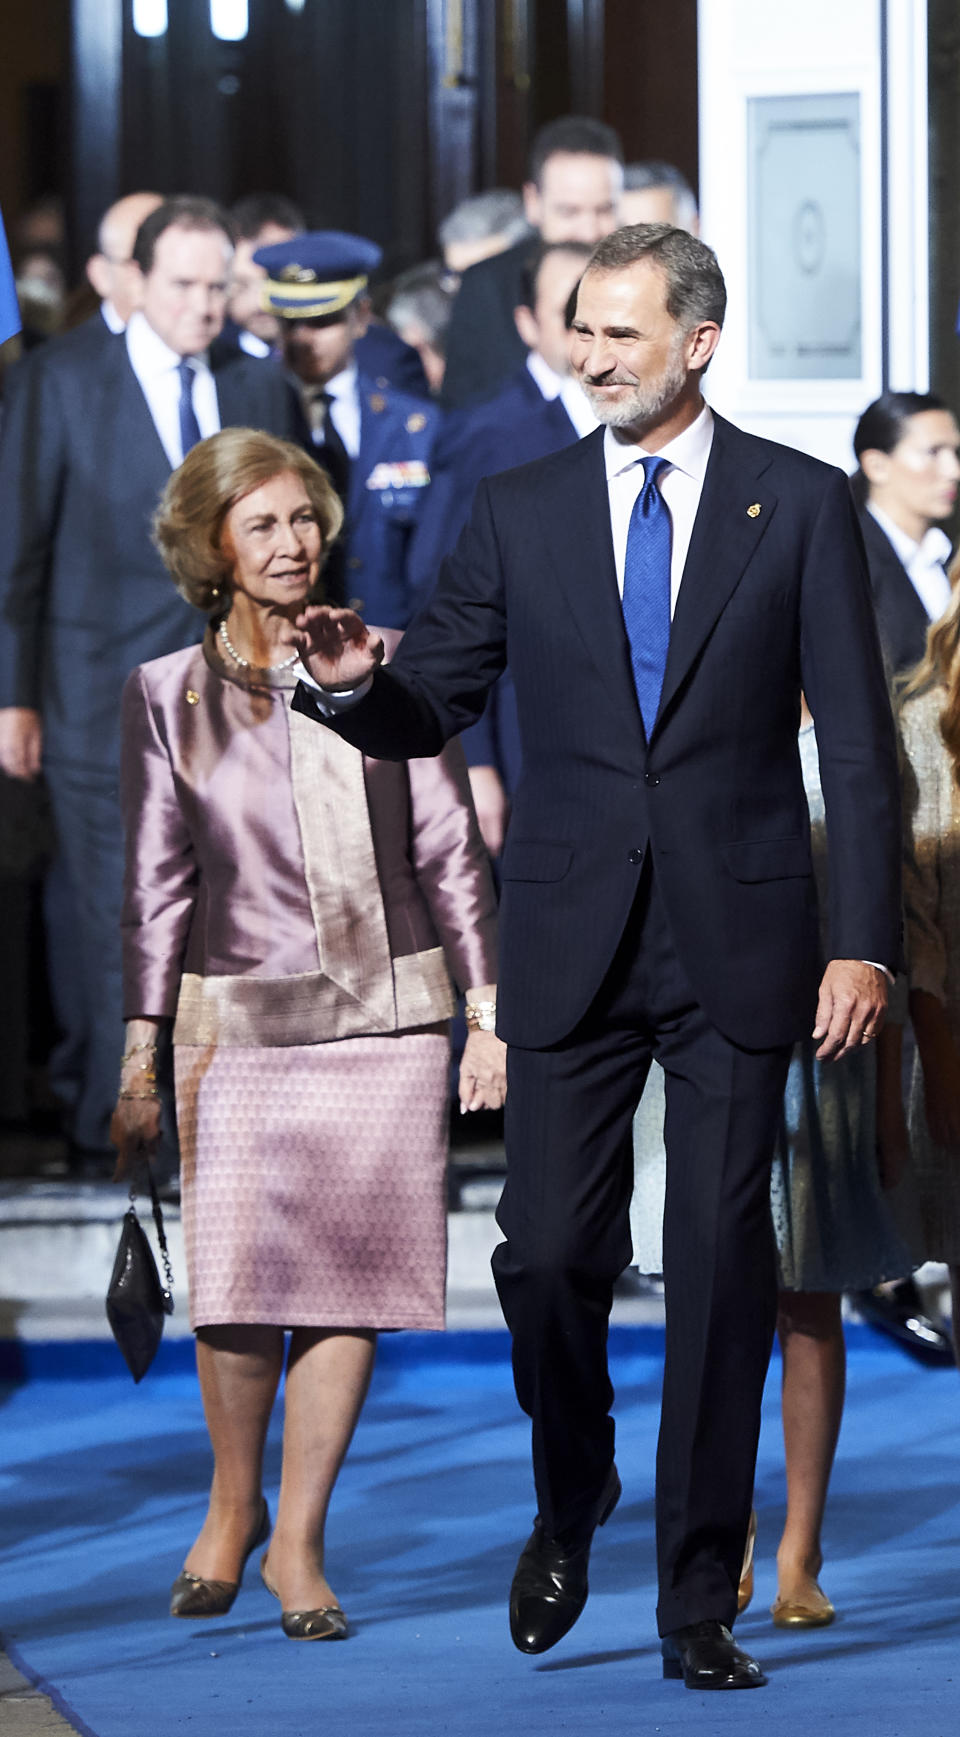 OVIEDO, SPAIN - OCTOBER 18: (L-R) Queen Sofia and King Felipe VI of Spain attend the 2019 Princess of Asturias Awards at the Campoamor Teather on October 18, 2019 in Oviedo, Spain. (Photo by Juan Manuel Serrano Arce/WireImage)